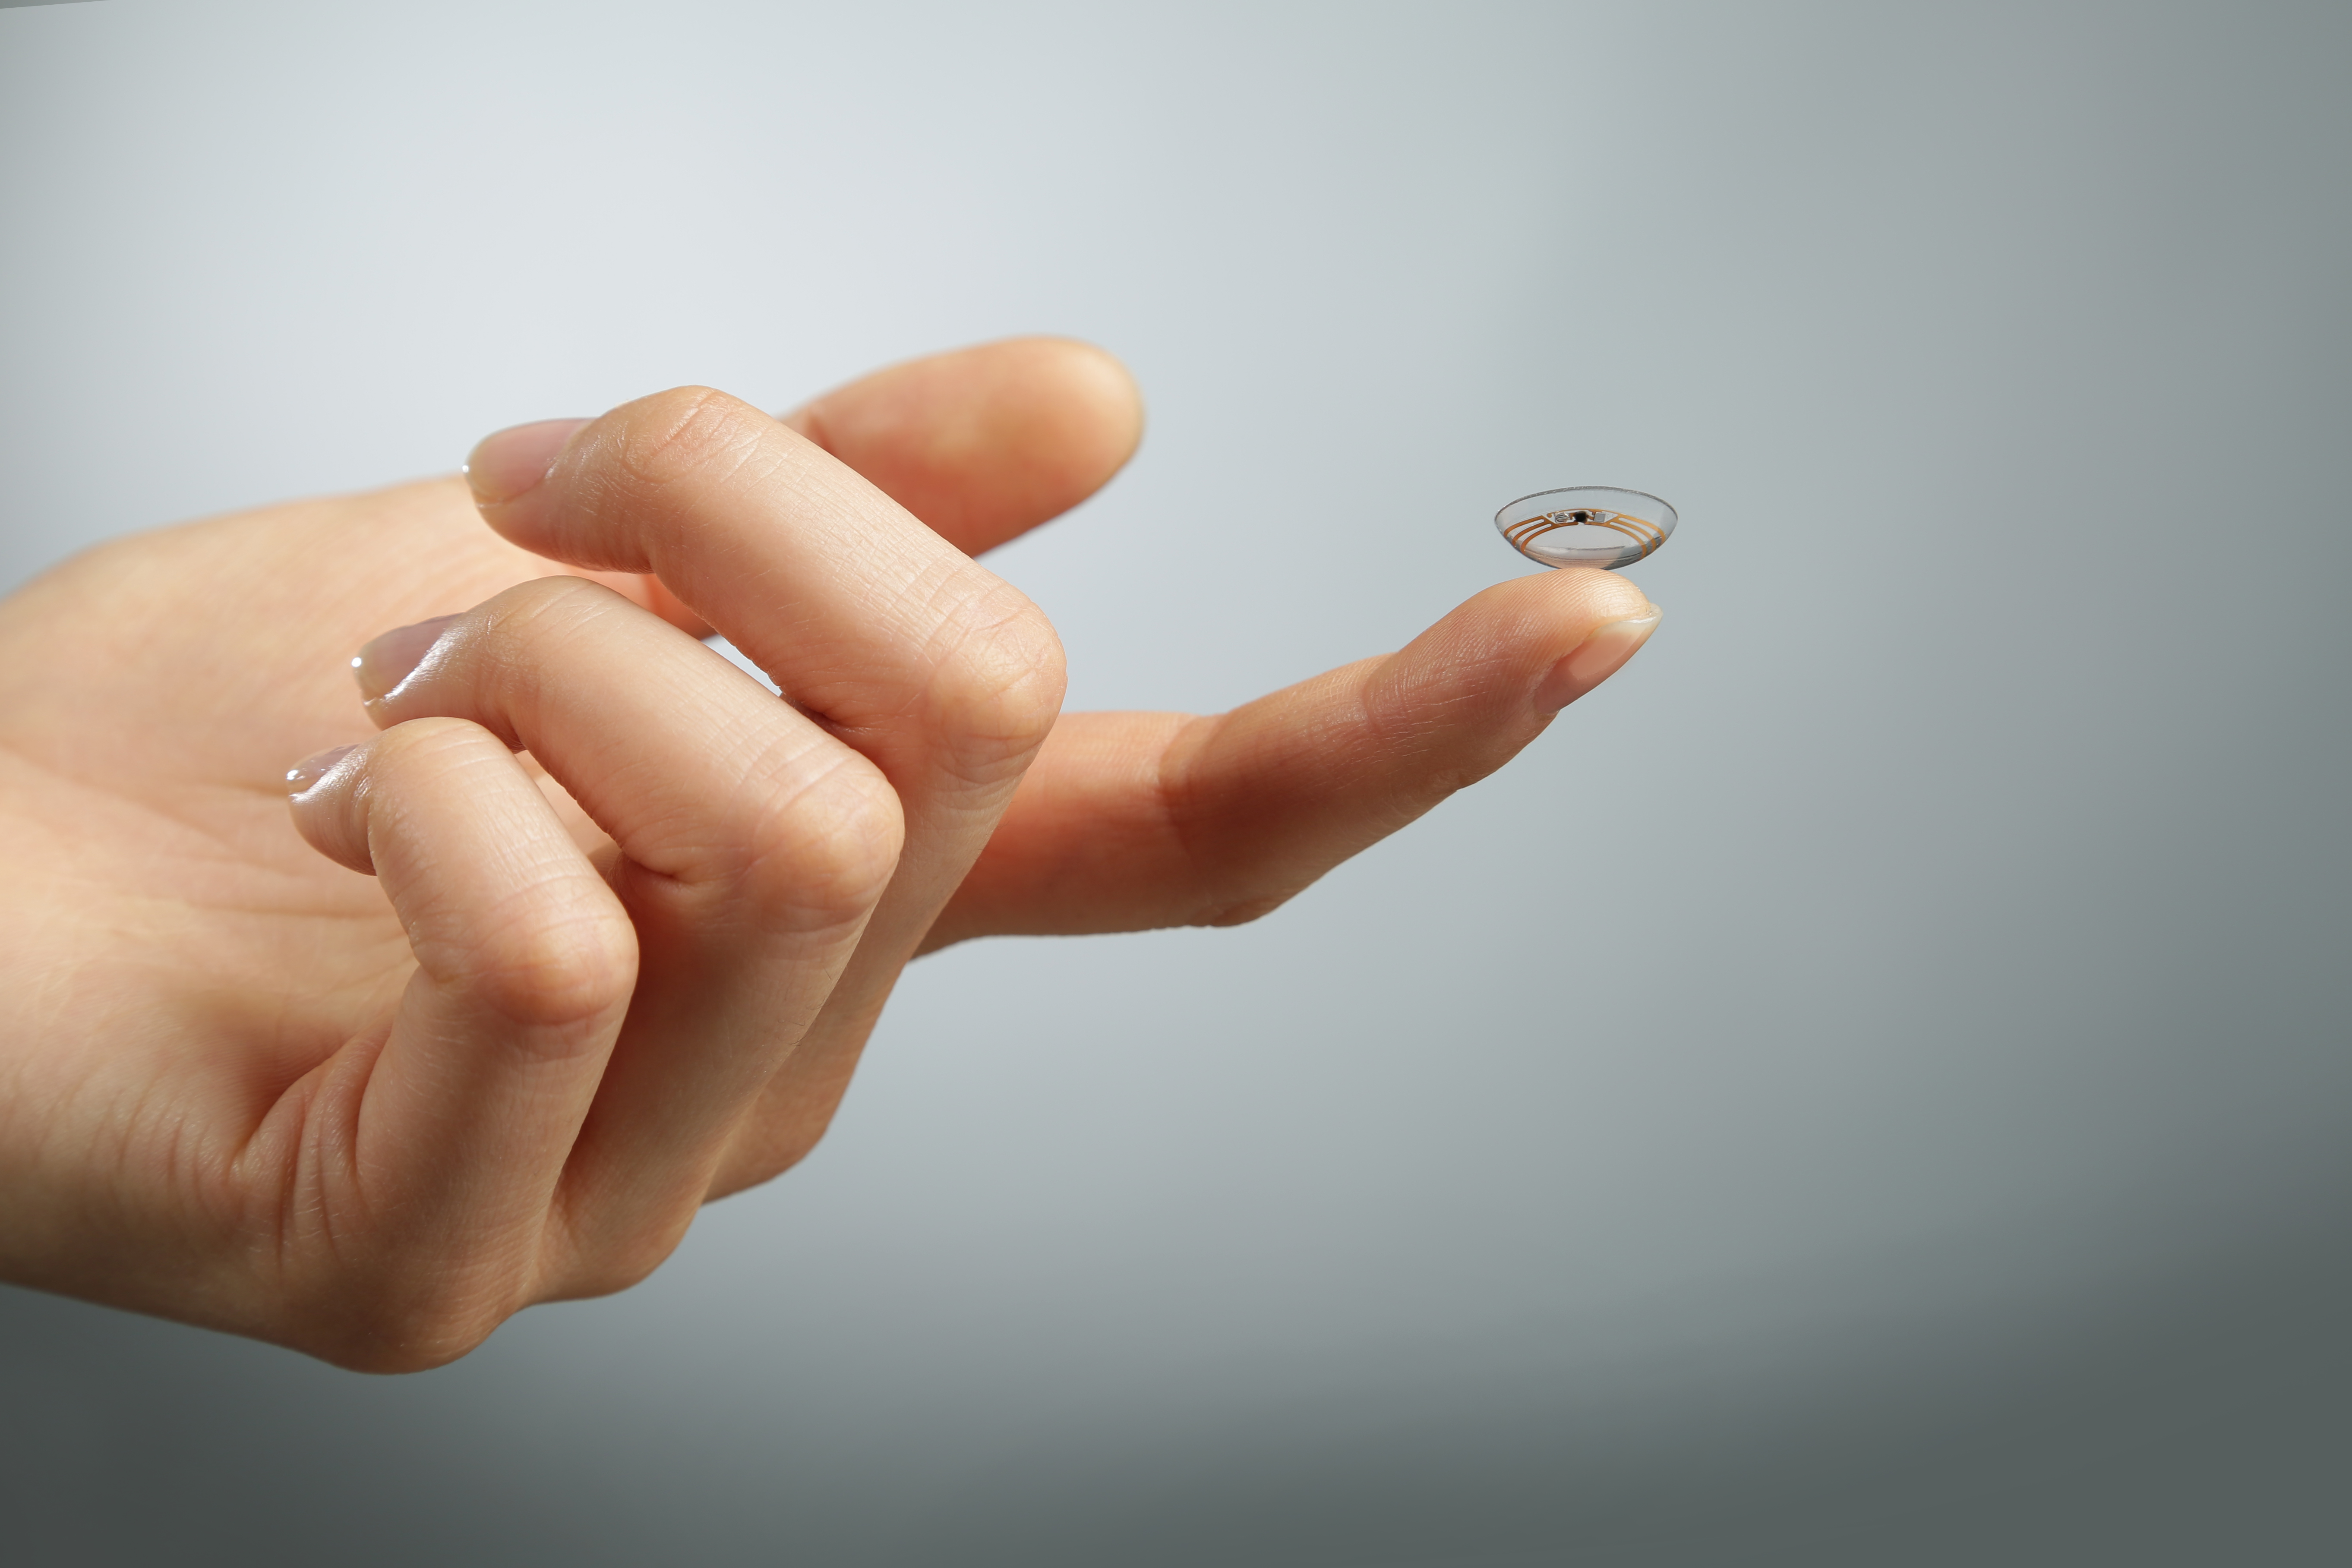 Google and Novartis to Collaborate on Smart Contact Lens for Diabetics